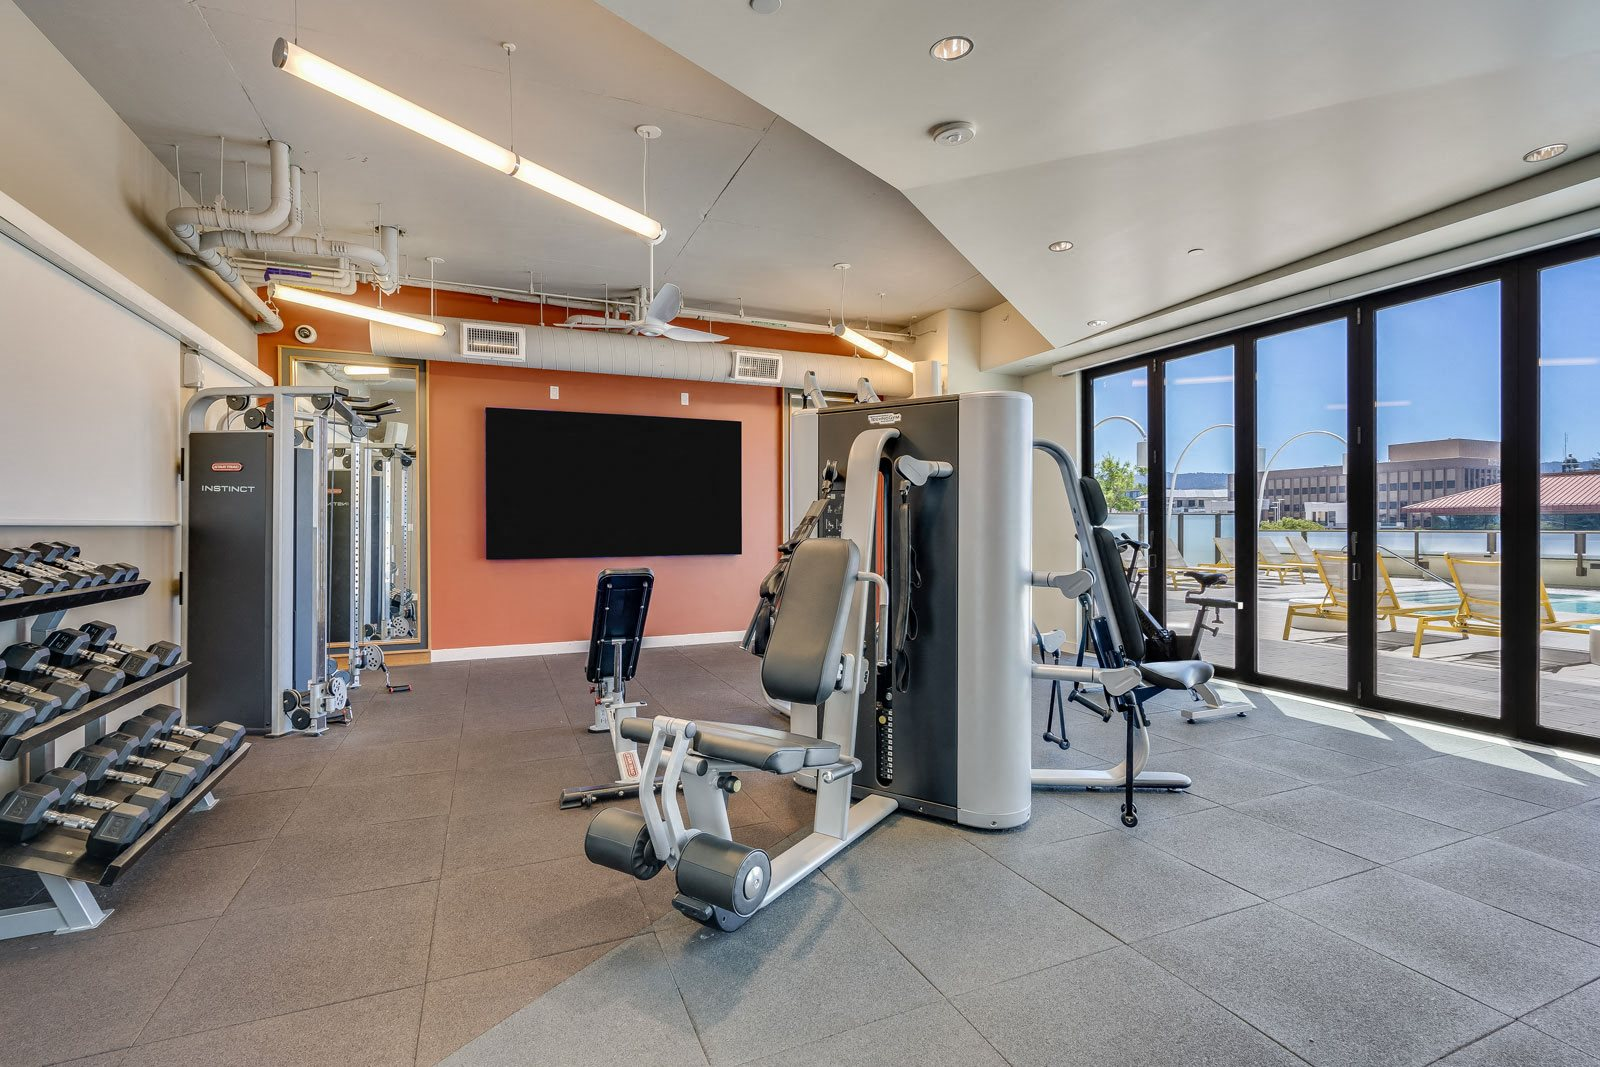 TVs in Fitness Center at The Marston by Windsor, 825 Marshall Street, Redwood City